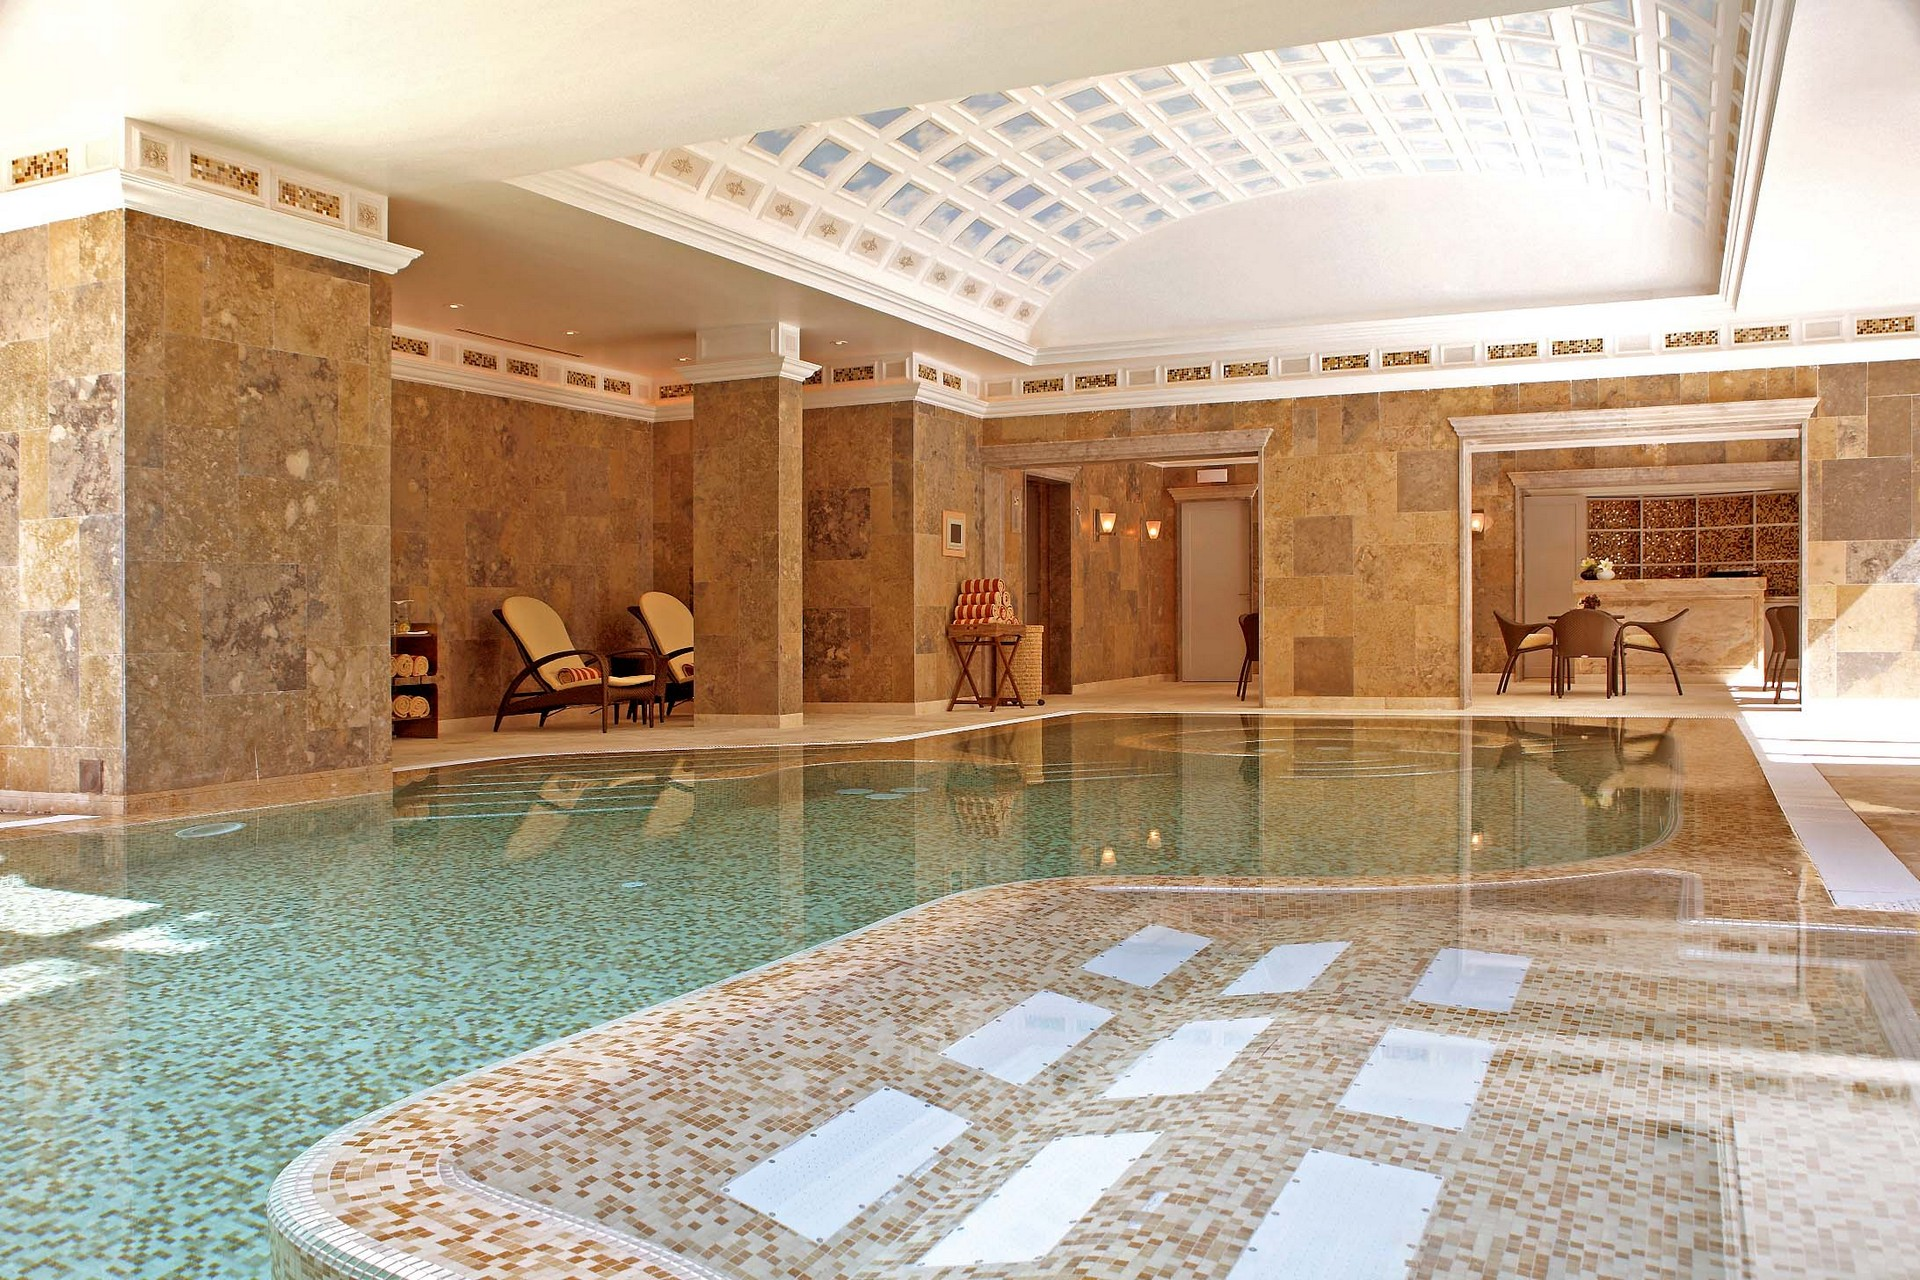 Best spas in Portugal: Real Spa Therapy best spas in portugal Best spas in Portugal: let yourself relax and enjoy Best spas in Portugal 9